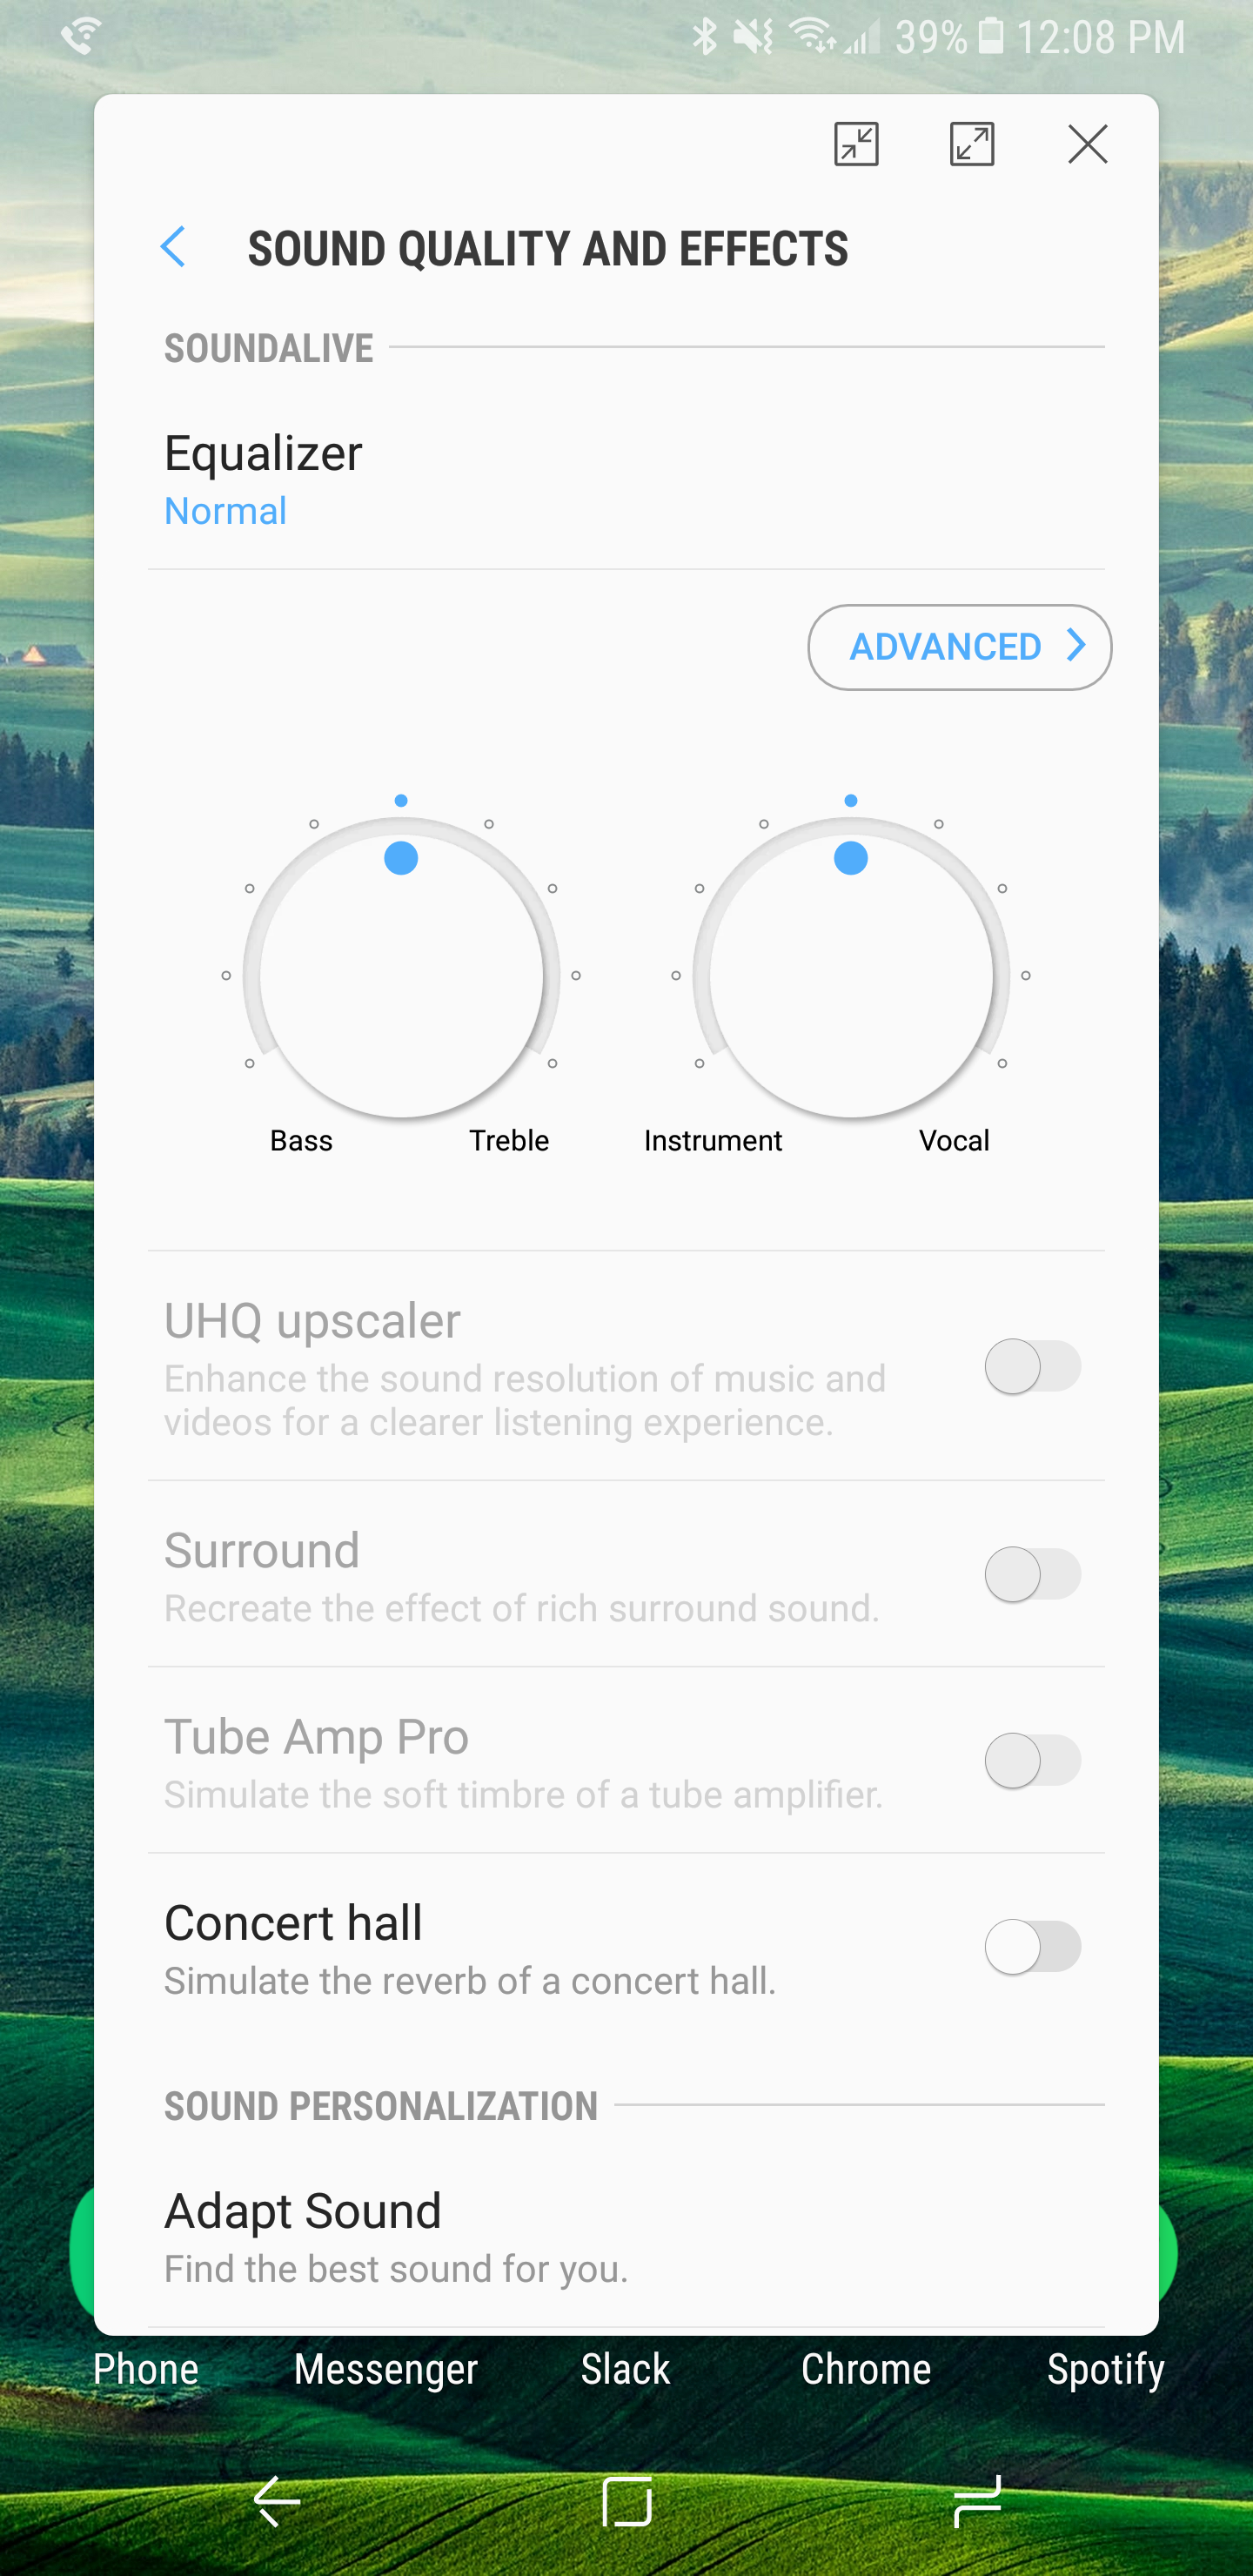 Samsung's new SoundAssistant app gives you greater control